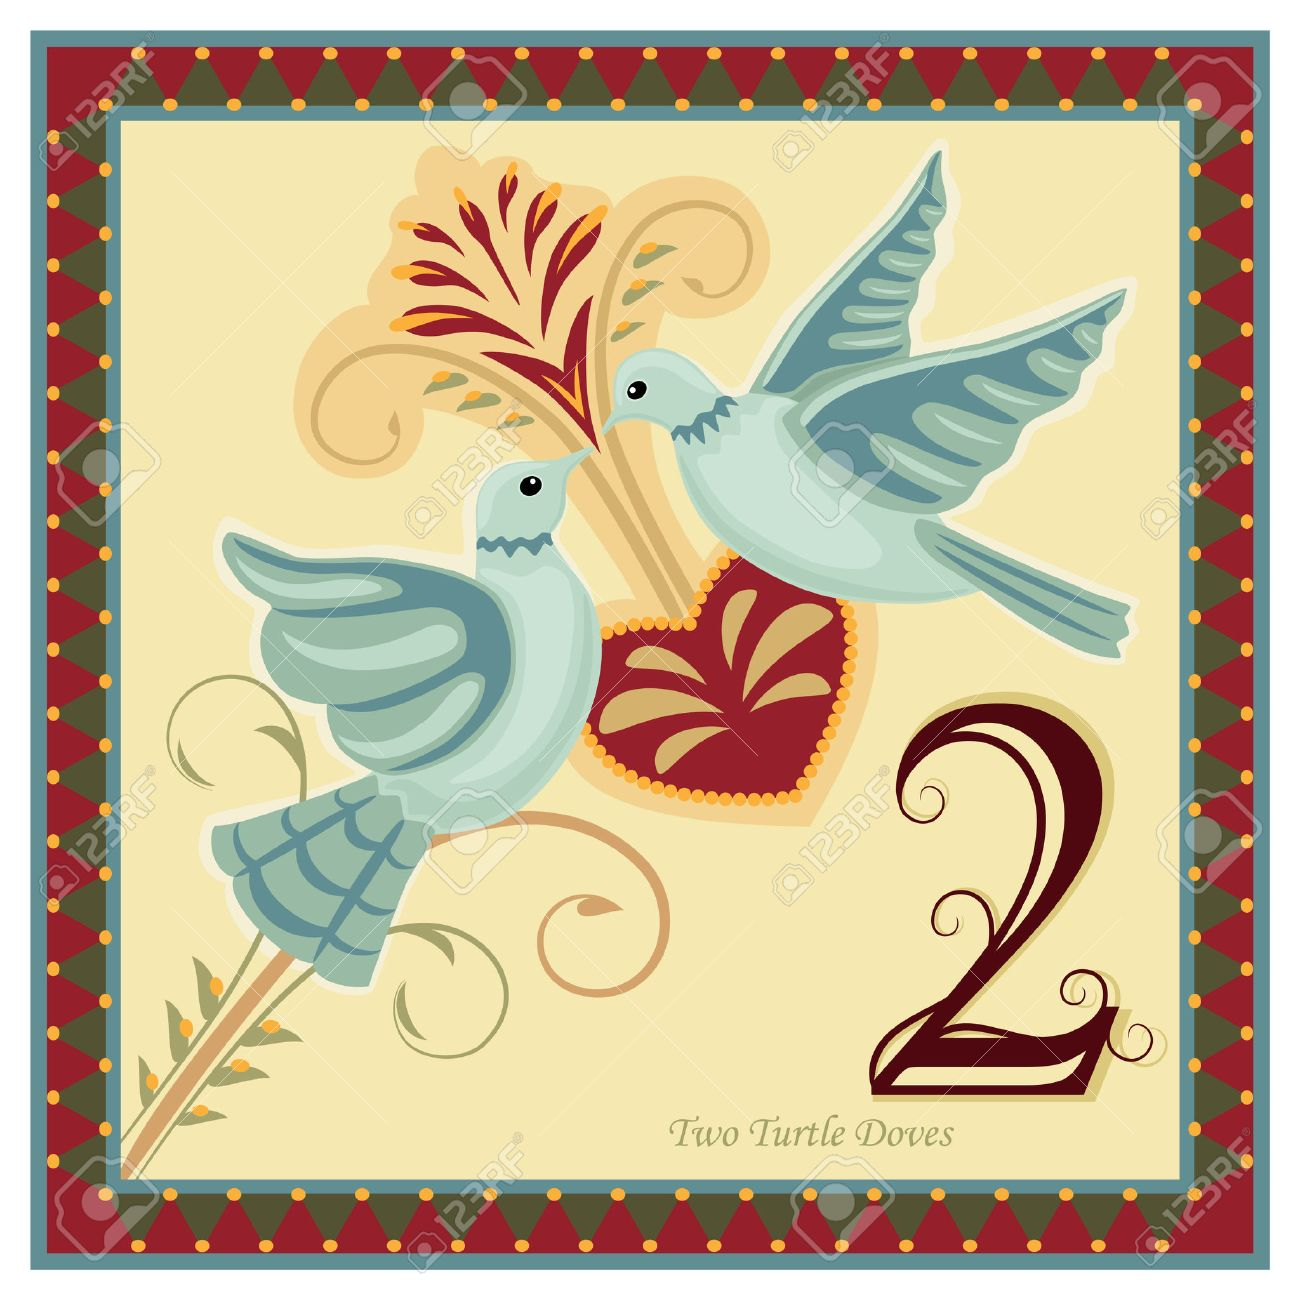 hight resolution of the 12 days of christmas 2 nd day two turtle doves vector